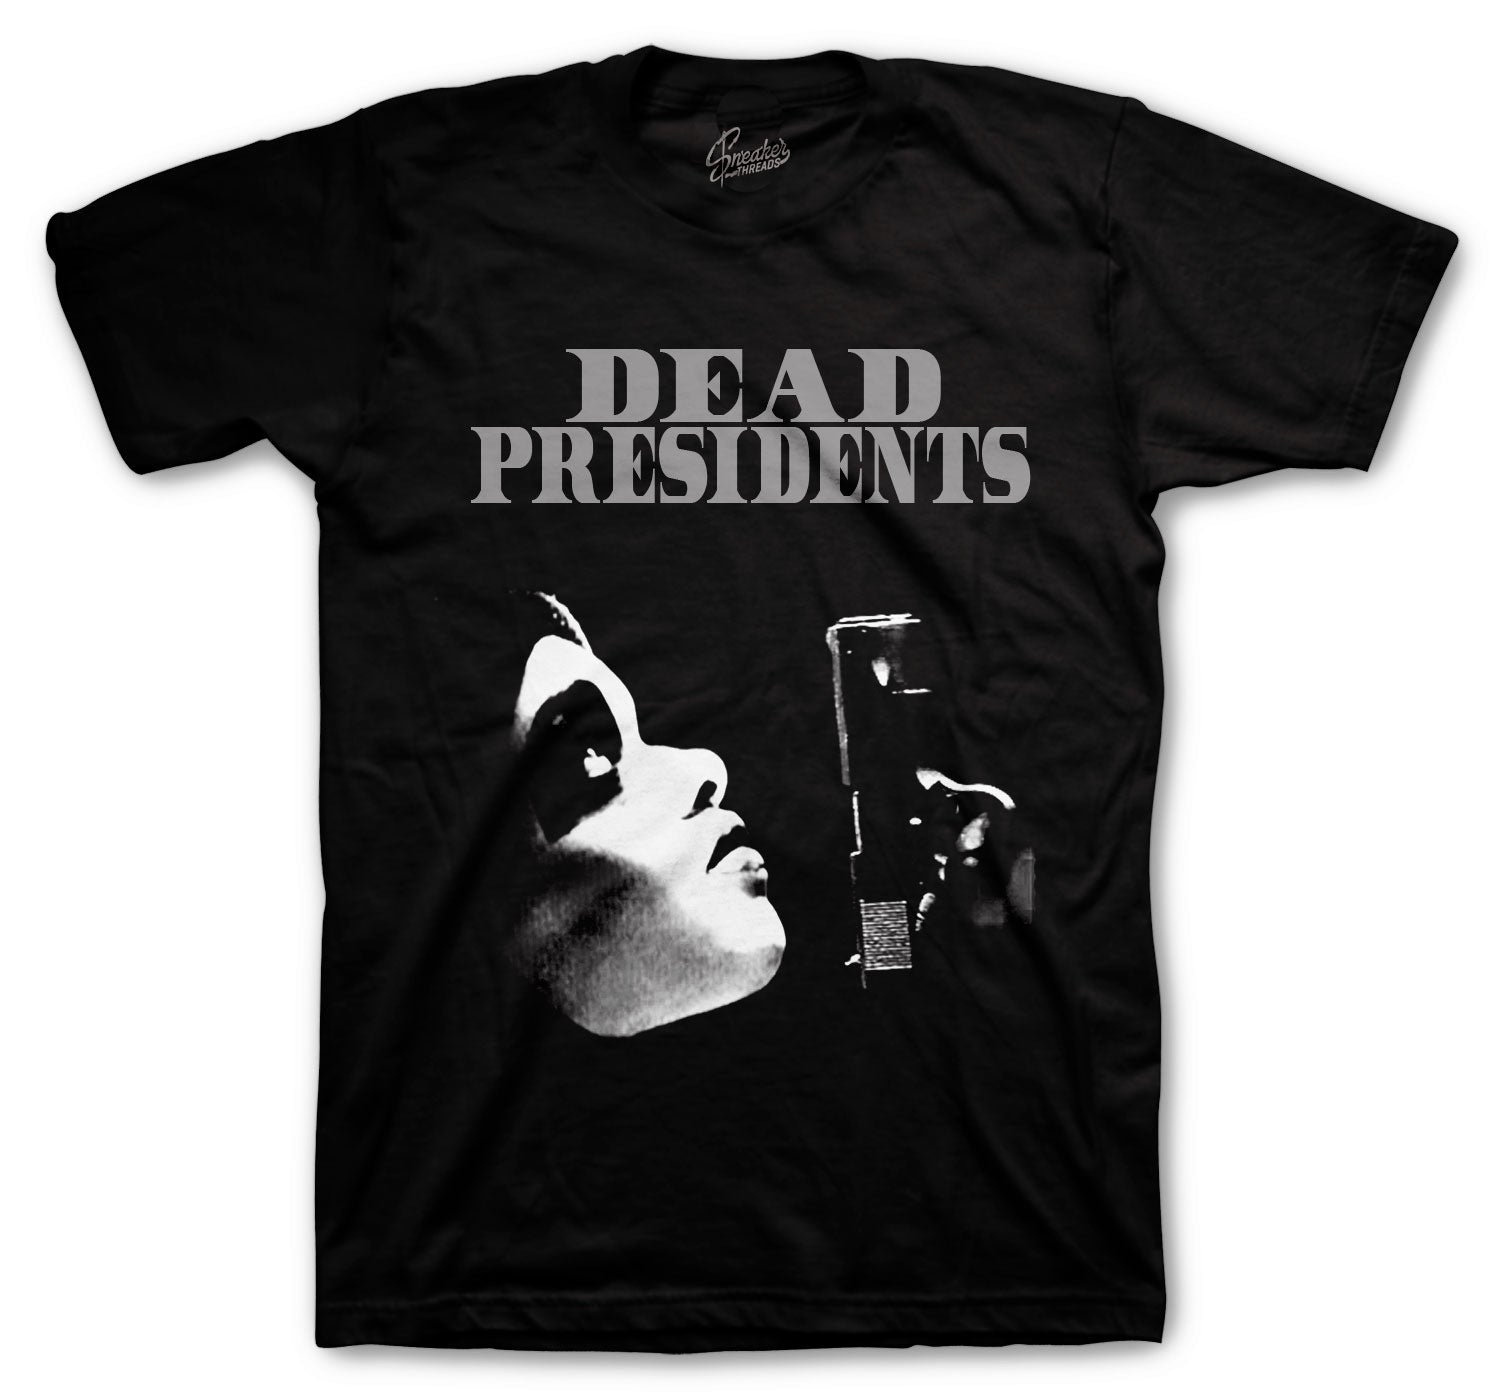 Foamposite Anthracite Shirt - Dead Pres - Black